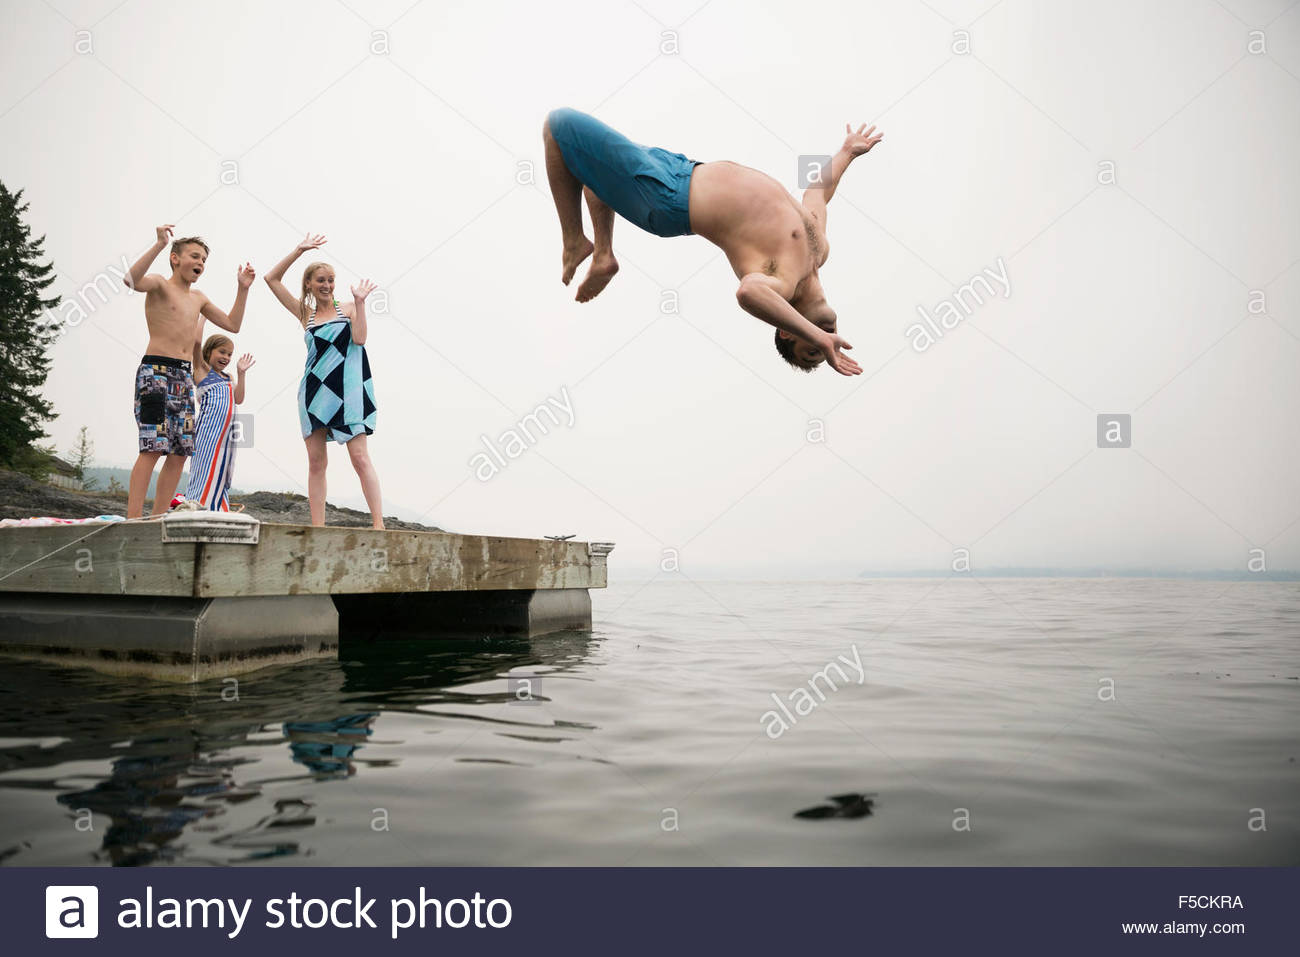 Family cheering father doing backflip into lake - Stock Image